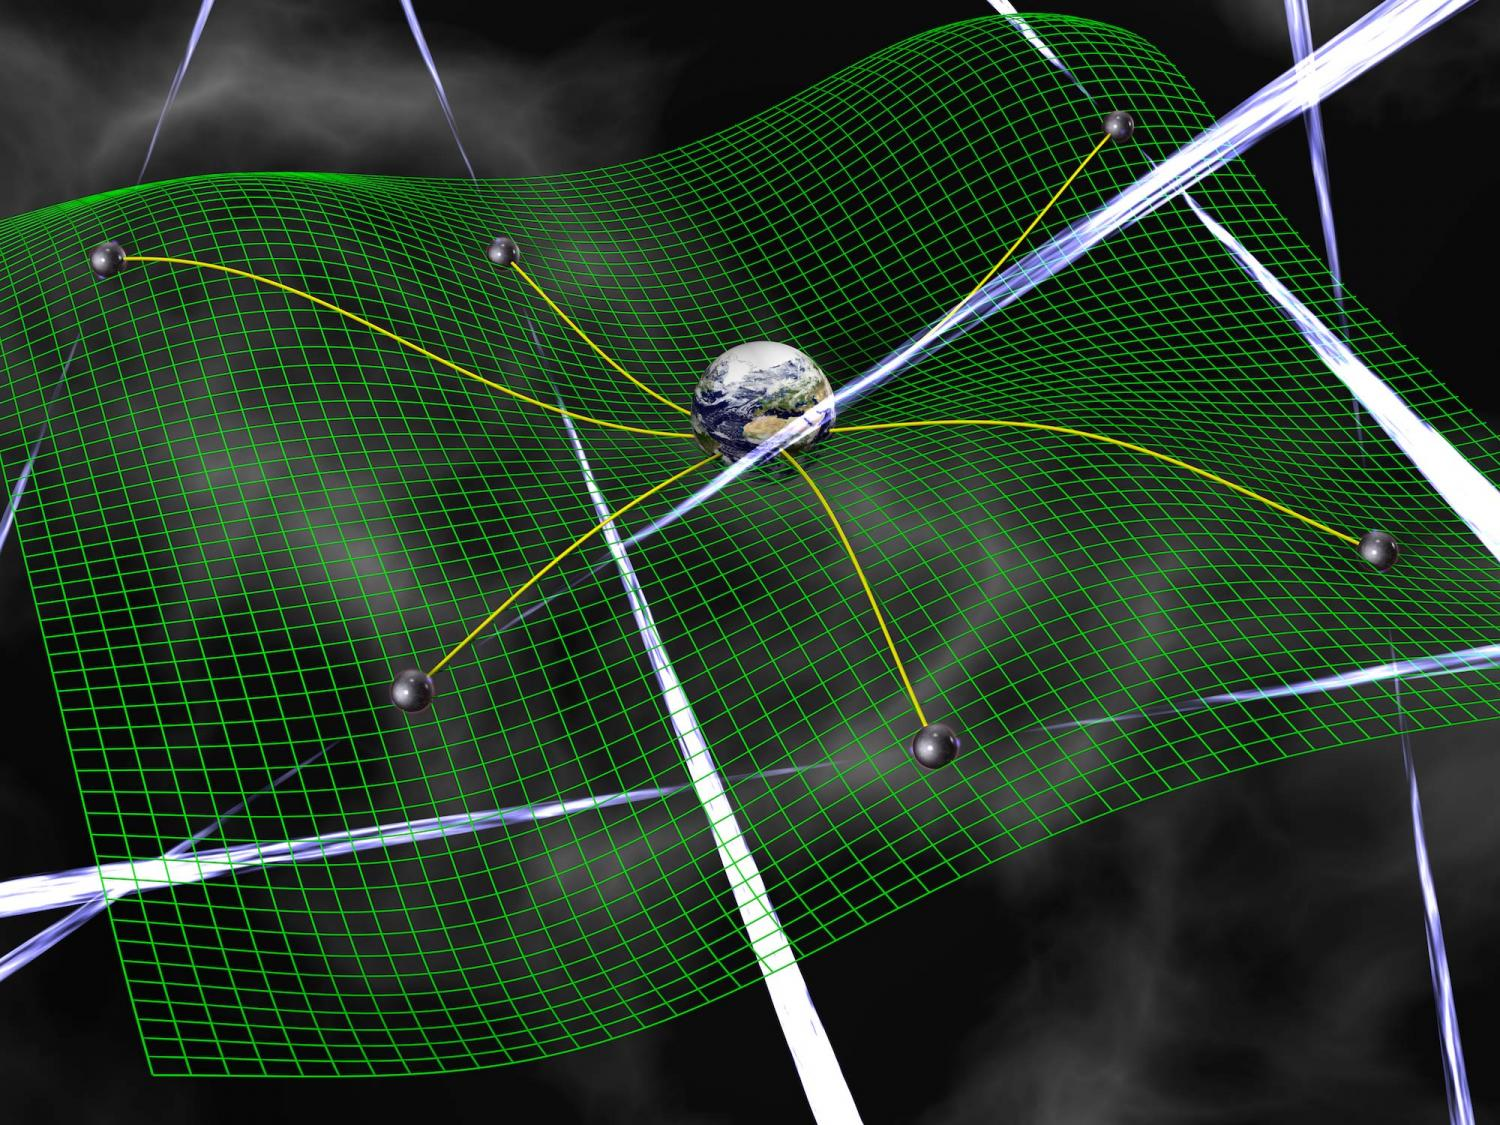 Pulsar web could detect low-frequency gravitational waves